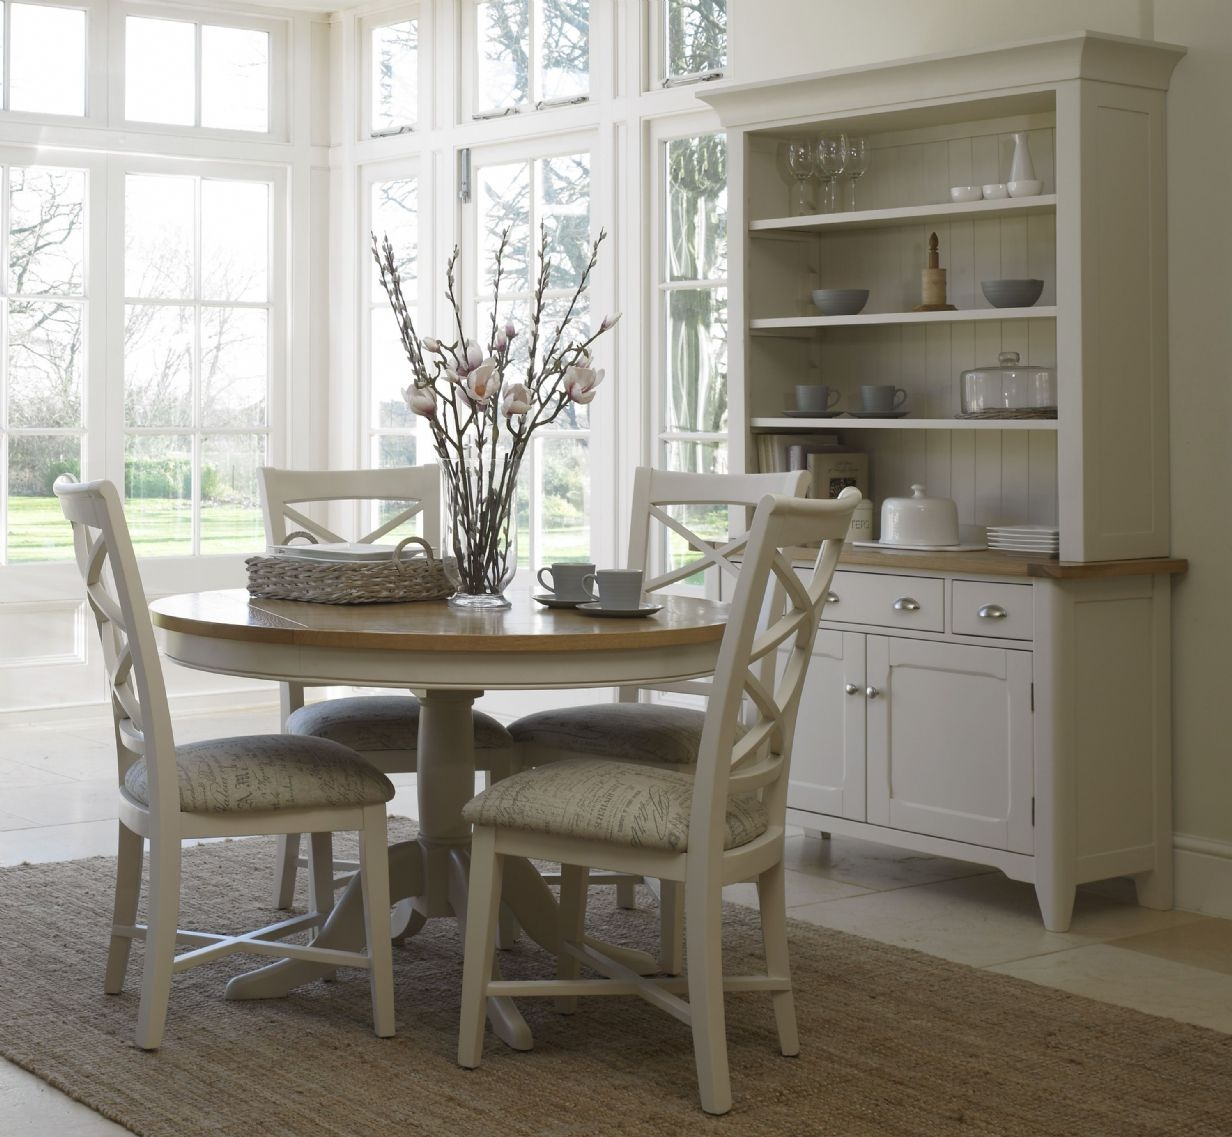 Round Kitchen Tables And Chairs Sets Round Kitchen Tables And Chairs Sets white round table and chairs uk starrkingschool 1232 X 1137